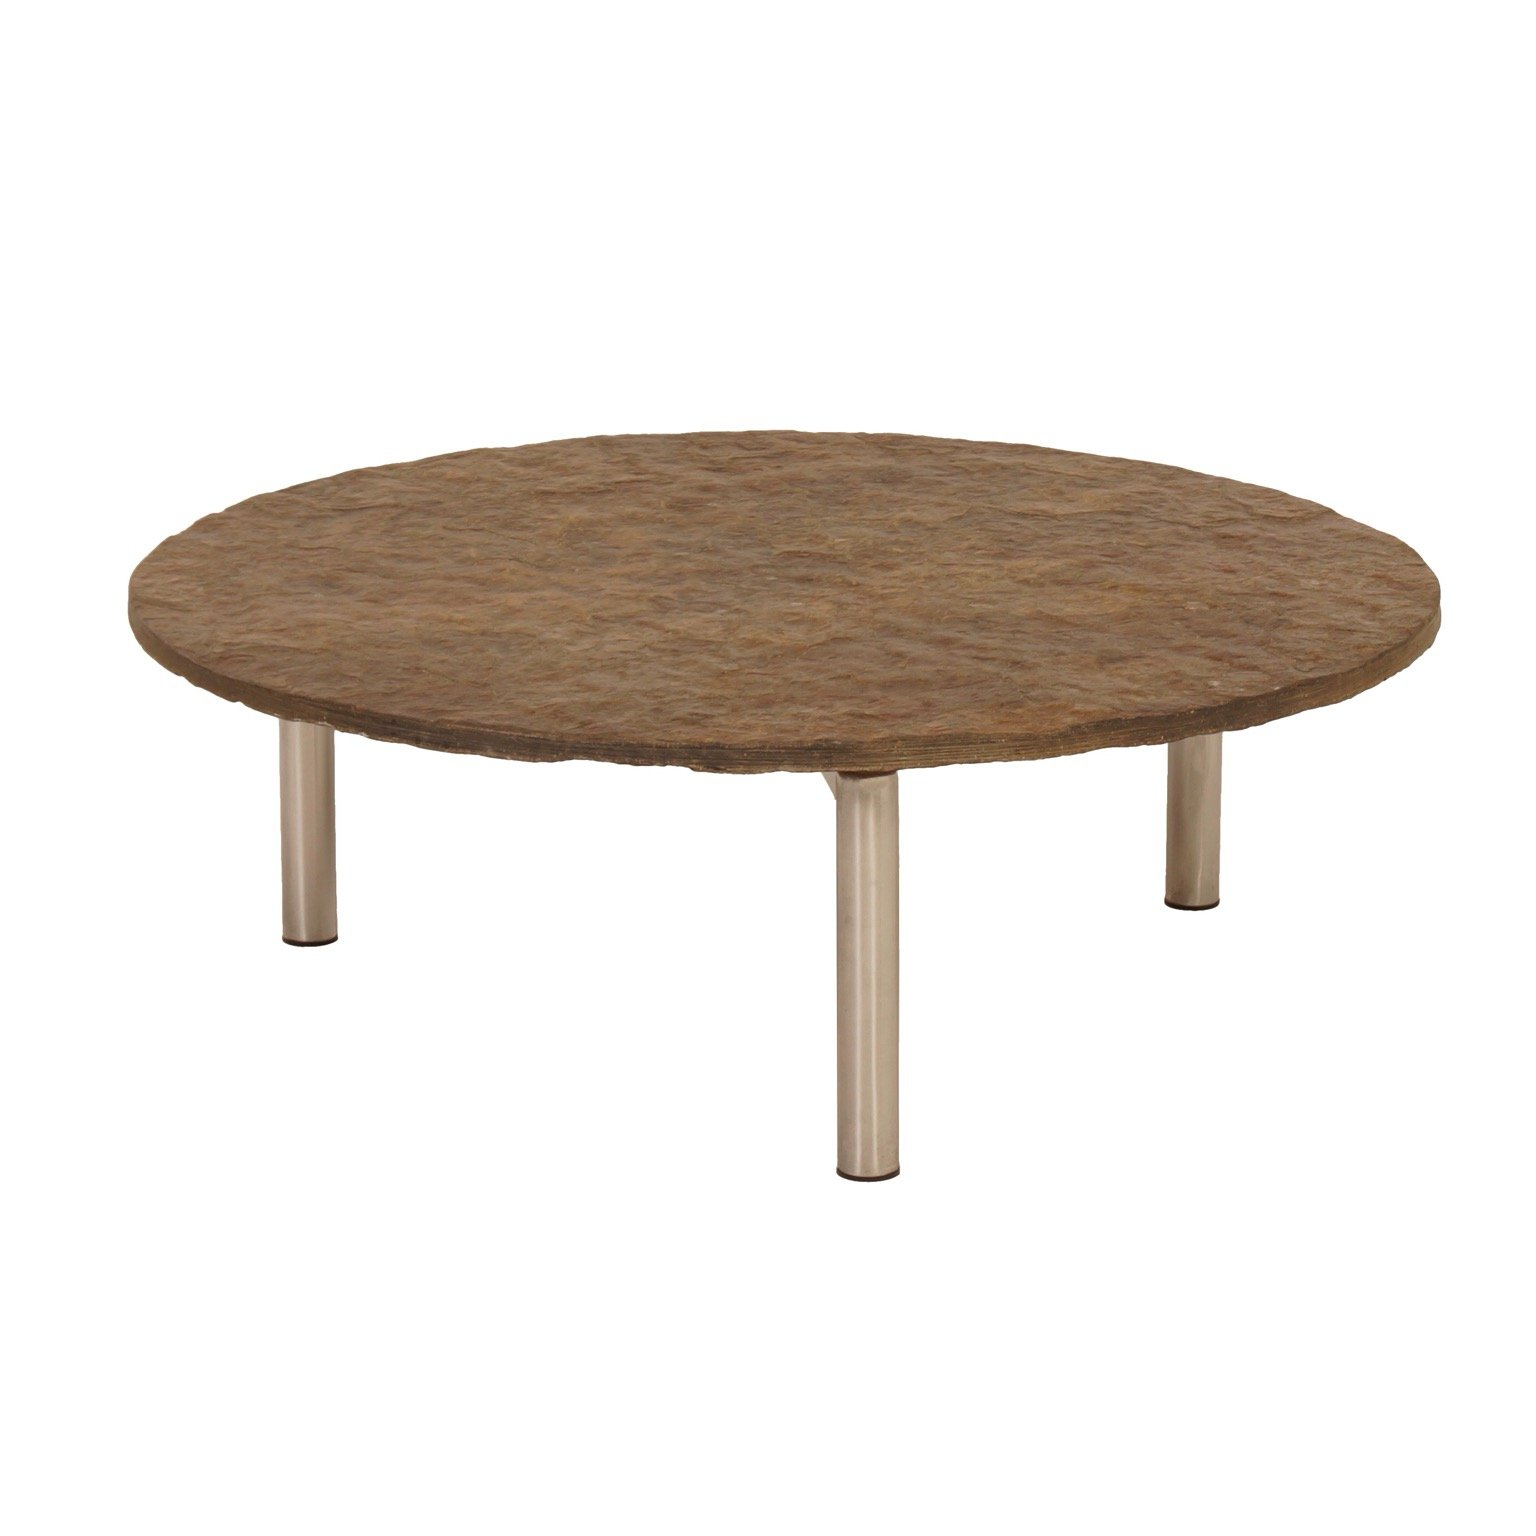 Round Coffee Table With Dark Colored